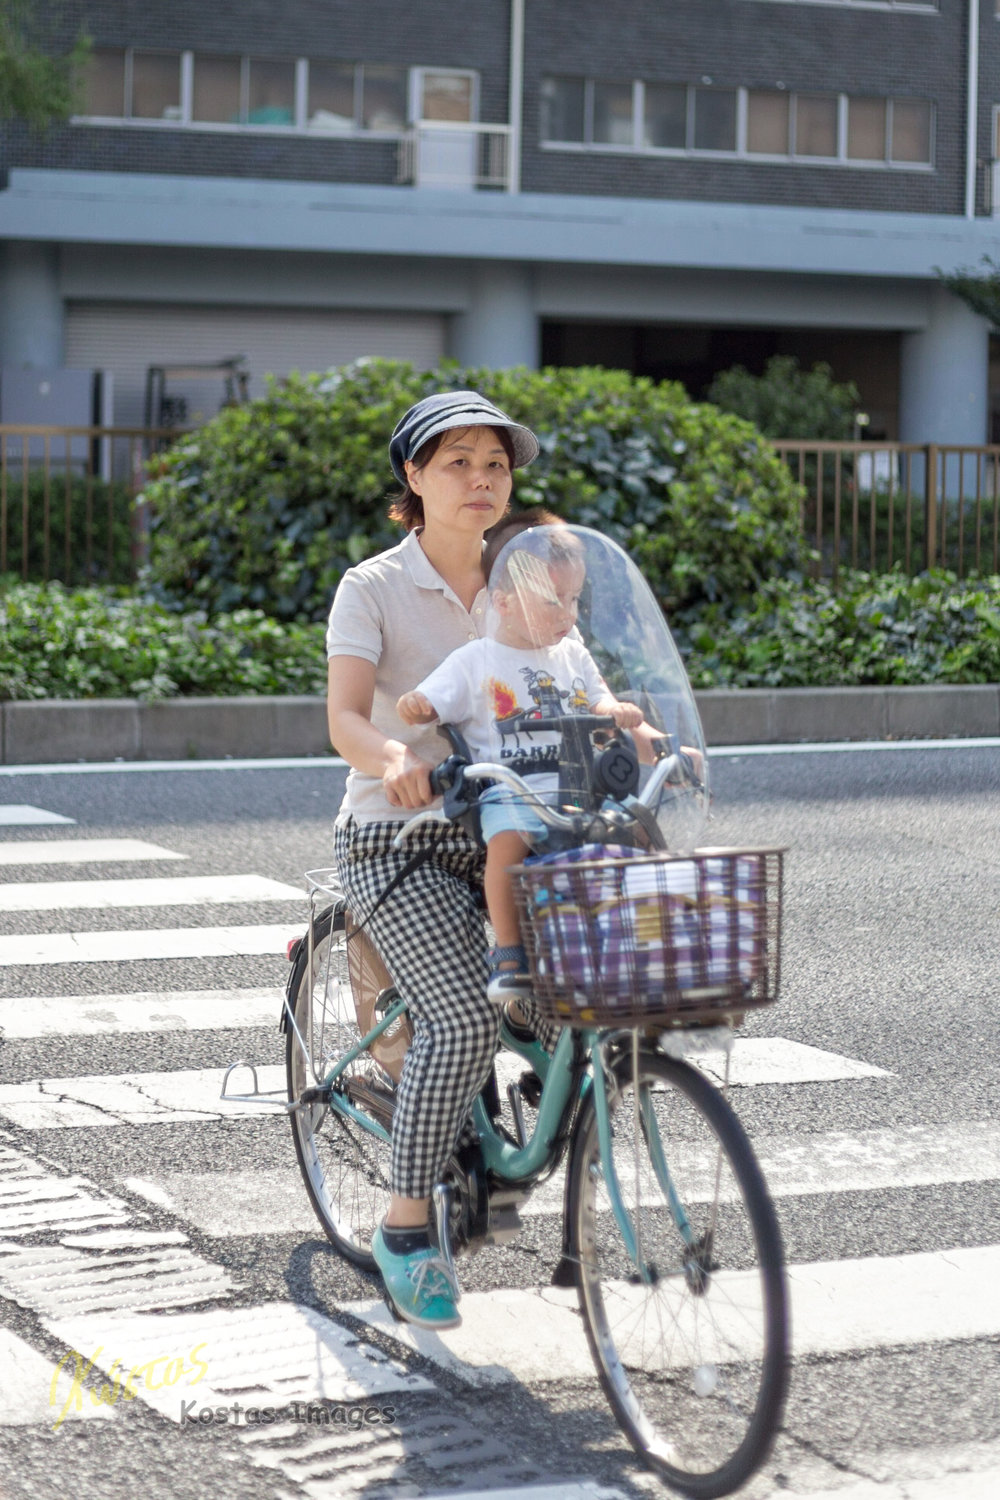 20160901-IMG_6197-Bicycle riding in Japan.jpg